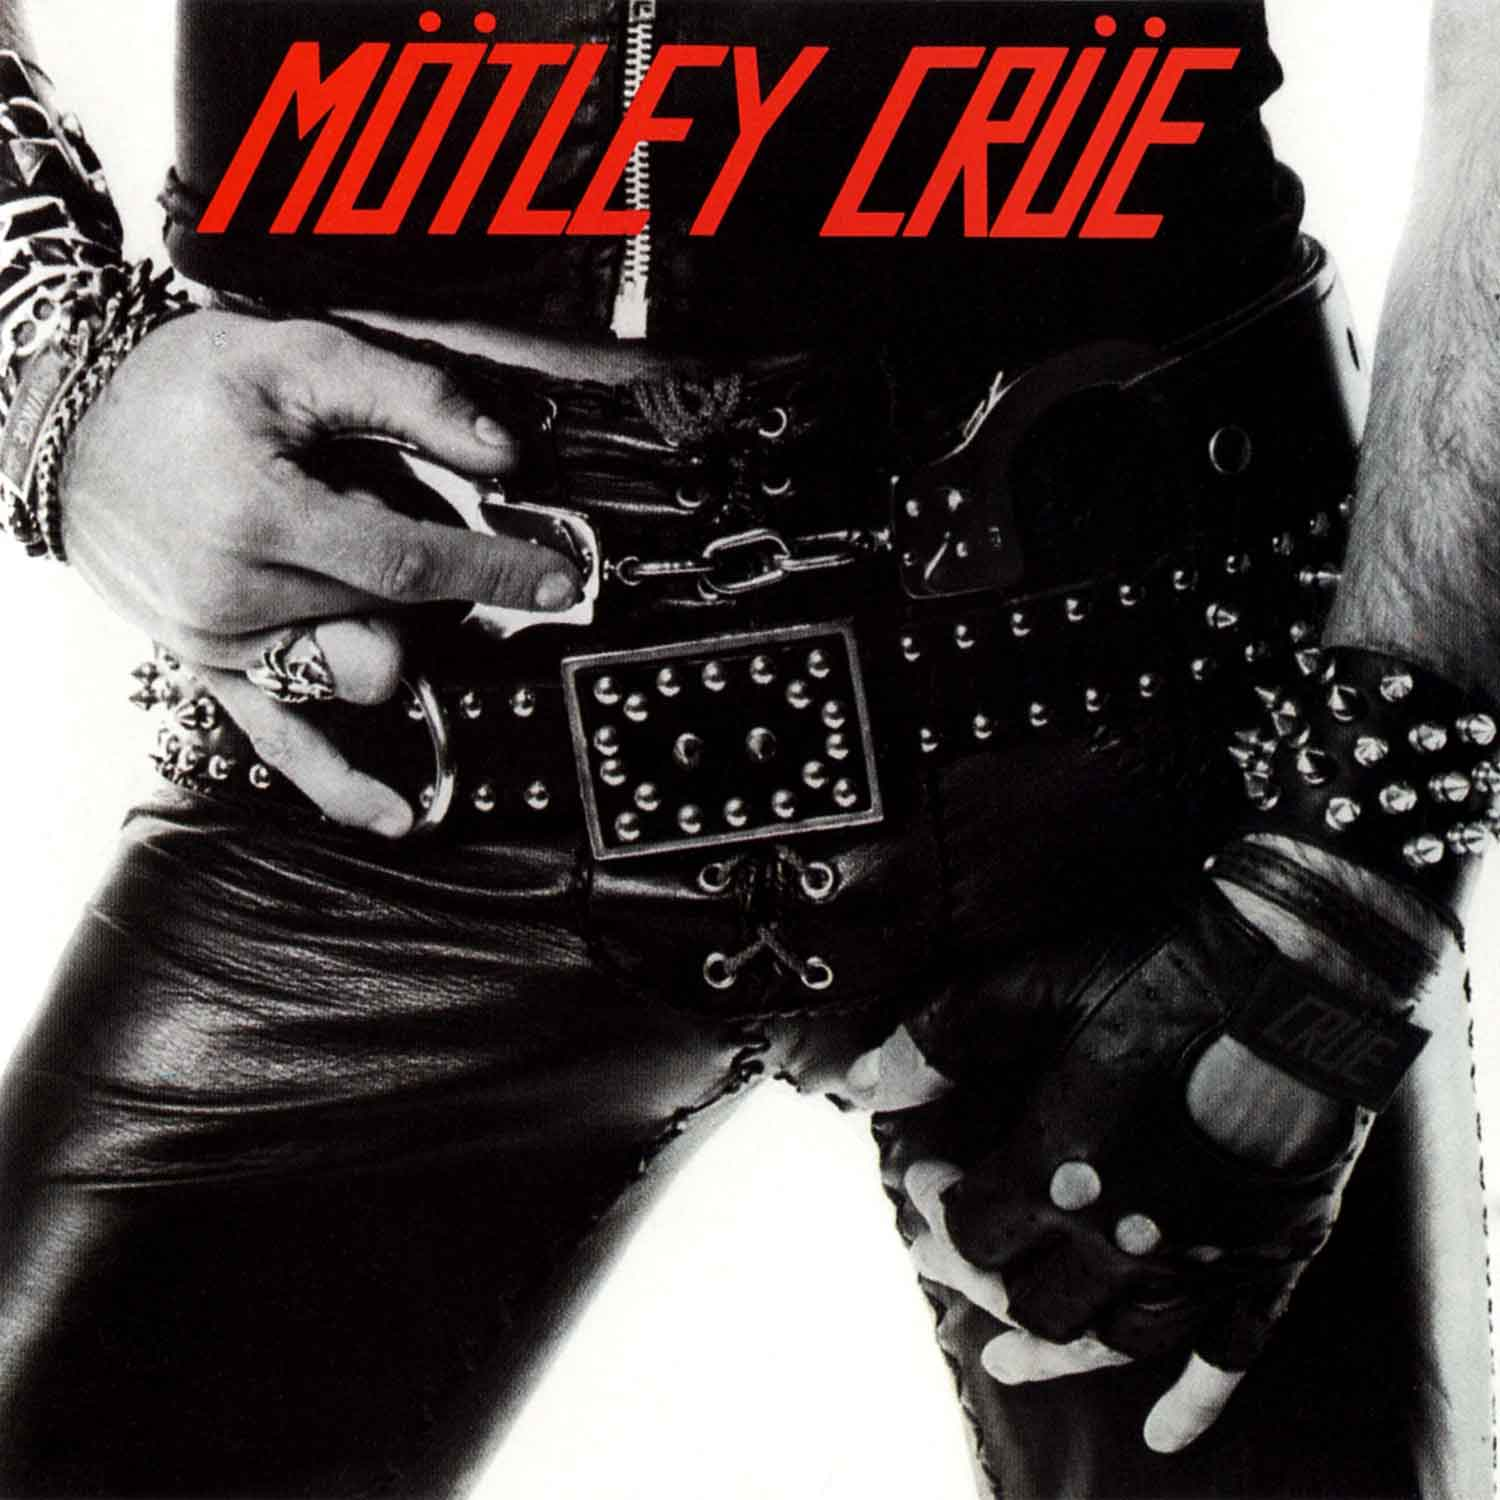 Piece Of Your Action - Motley Crue